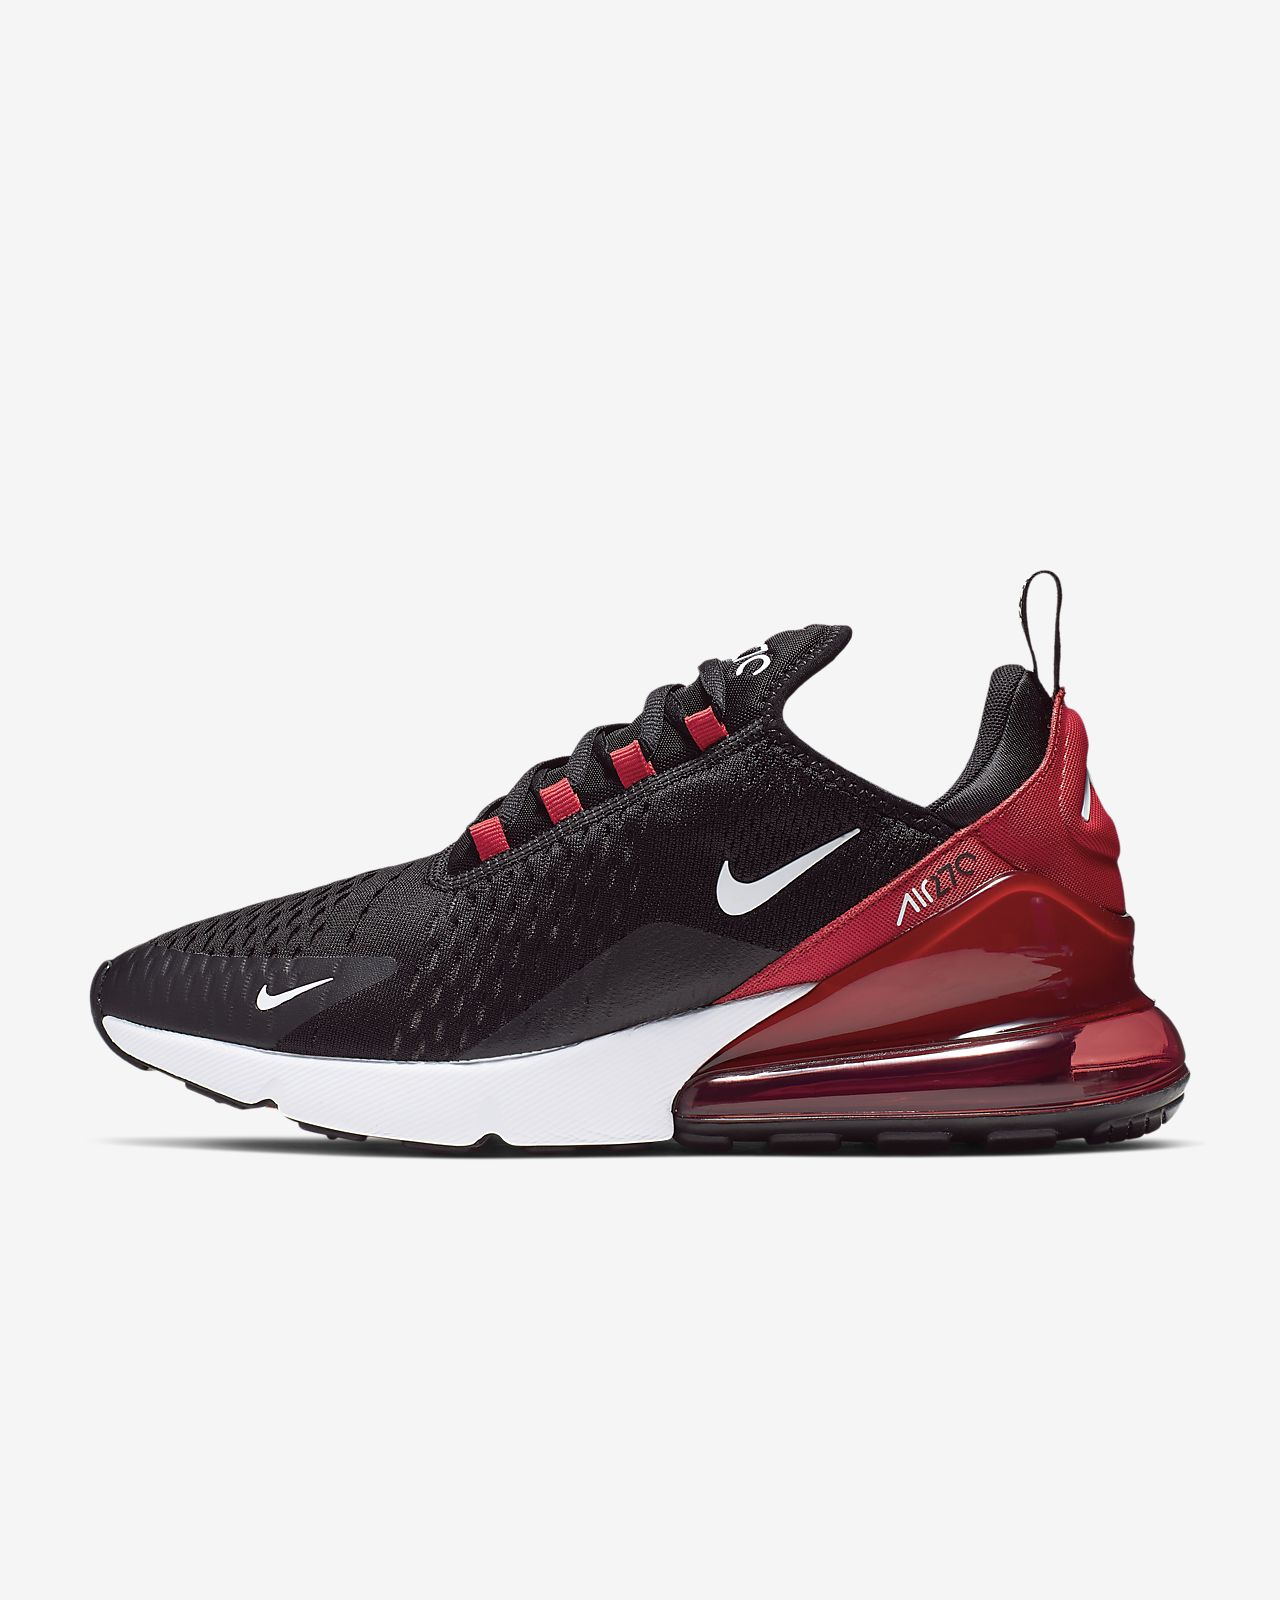 lowest price 8c233 d1527 ... Nike Air Max 270 Men s Shoe